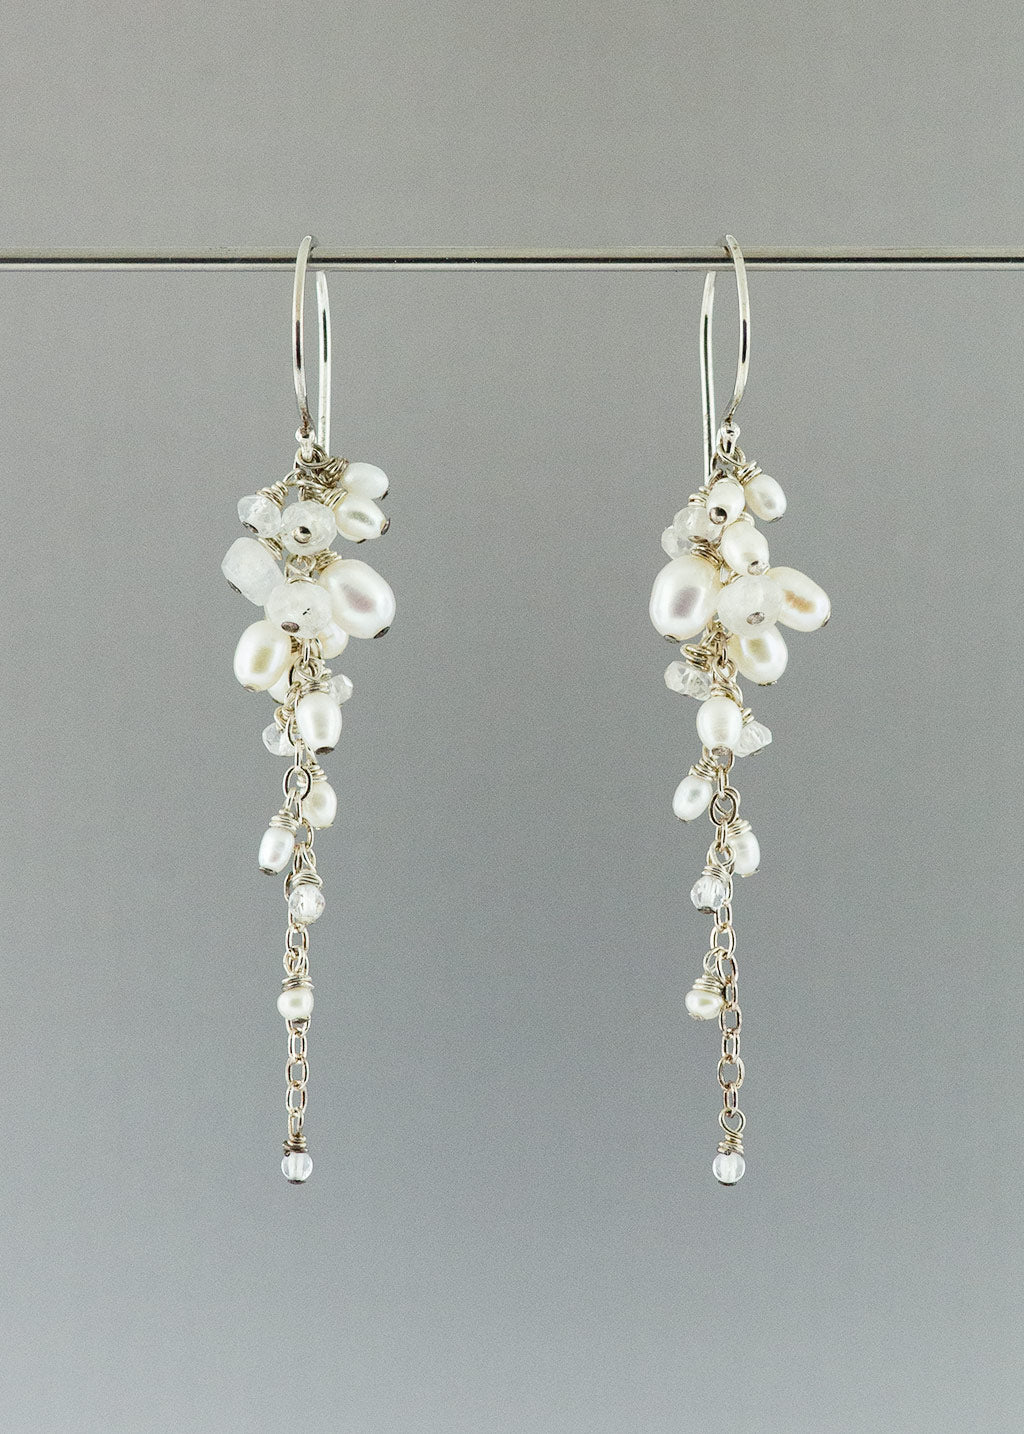 Pearl and moonstone chandelier earrings